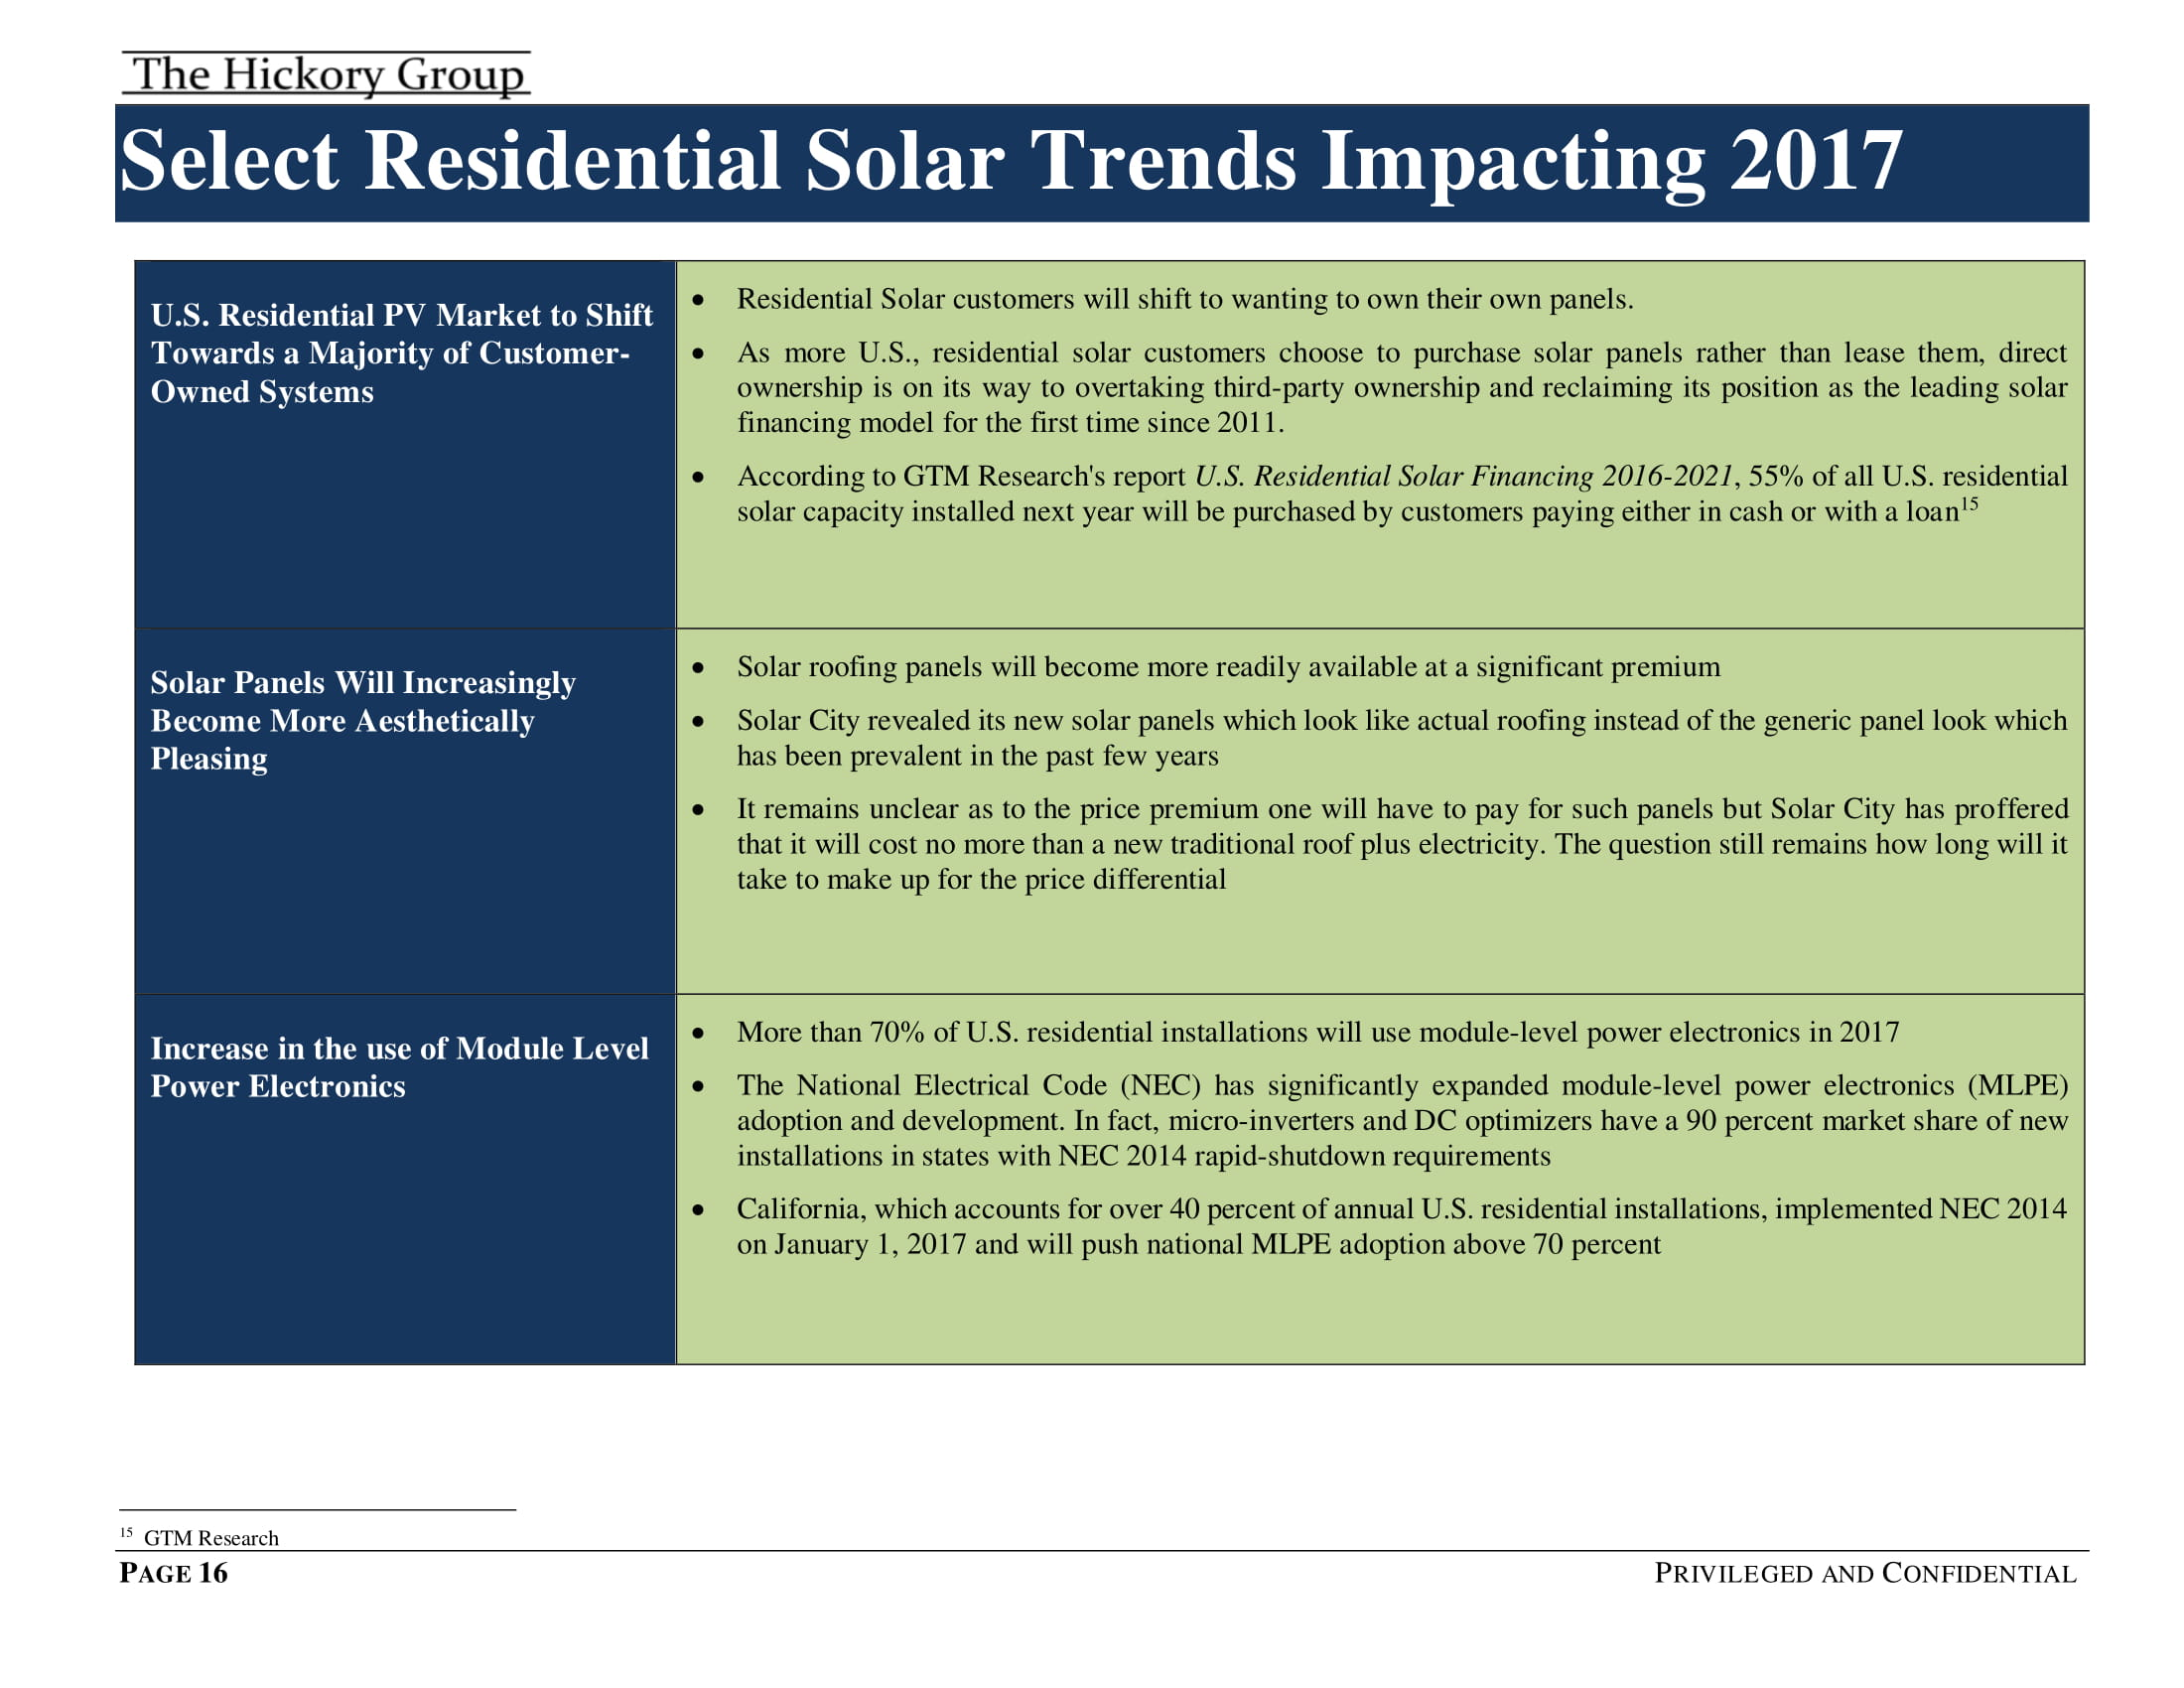 THG Residential Solar Report (30 May 2017) Privileged and Confidential CLEAN[1]-16.jpg